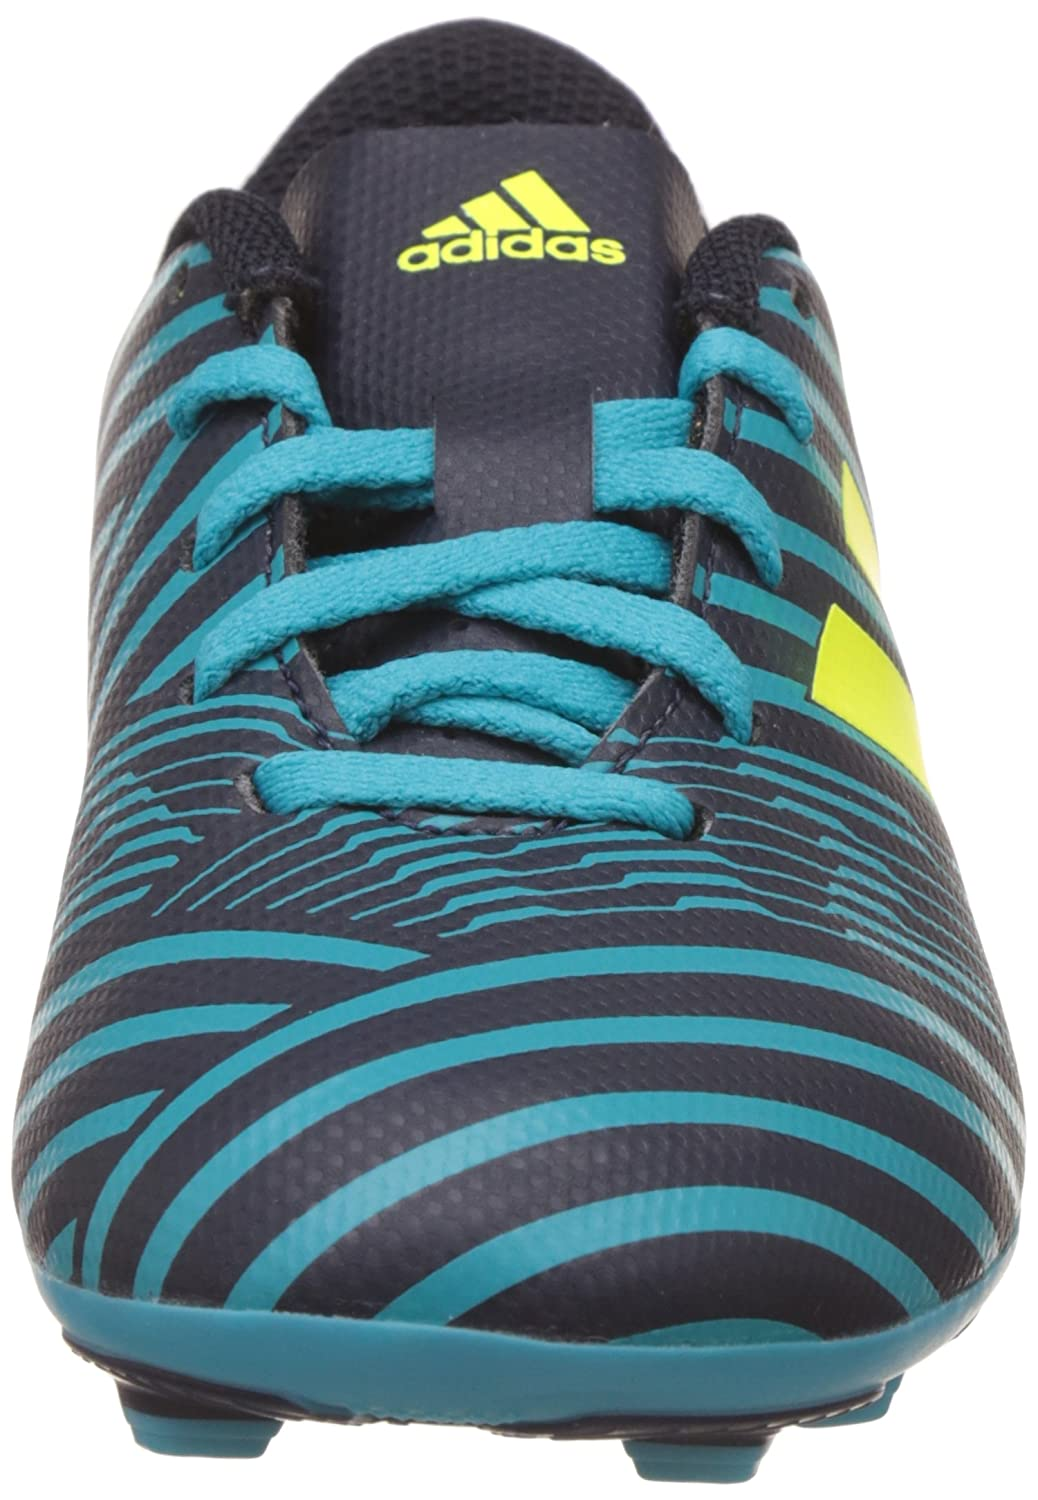 Biblia Controlar el fin  S82458 adidas Nemeziz 174 FxG J Color: Green Size: 5.0 Boys Athletic